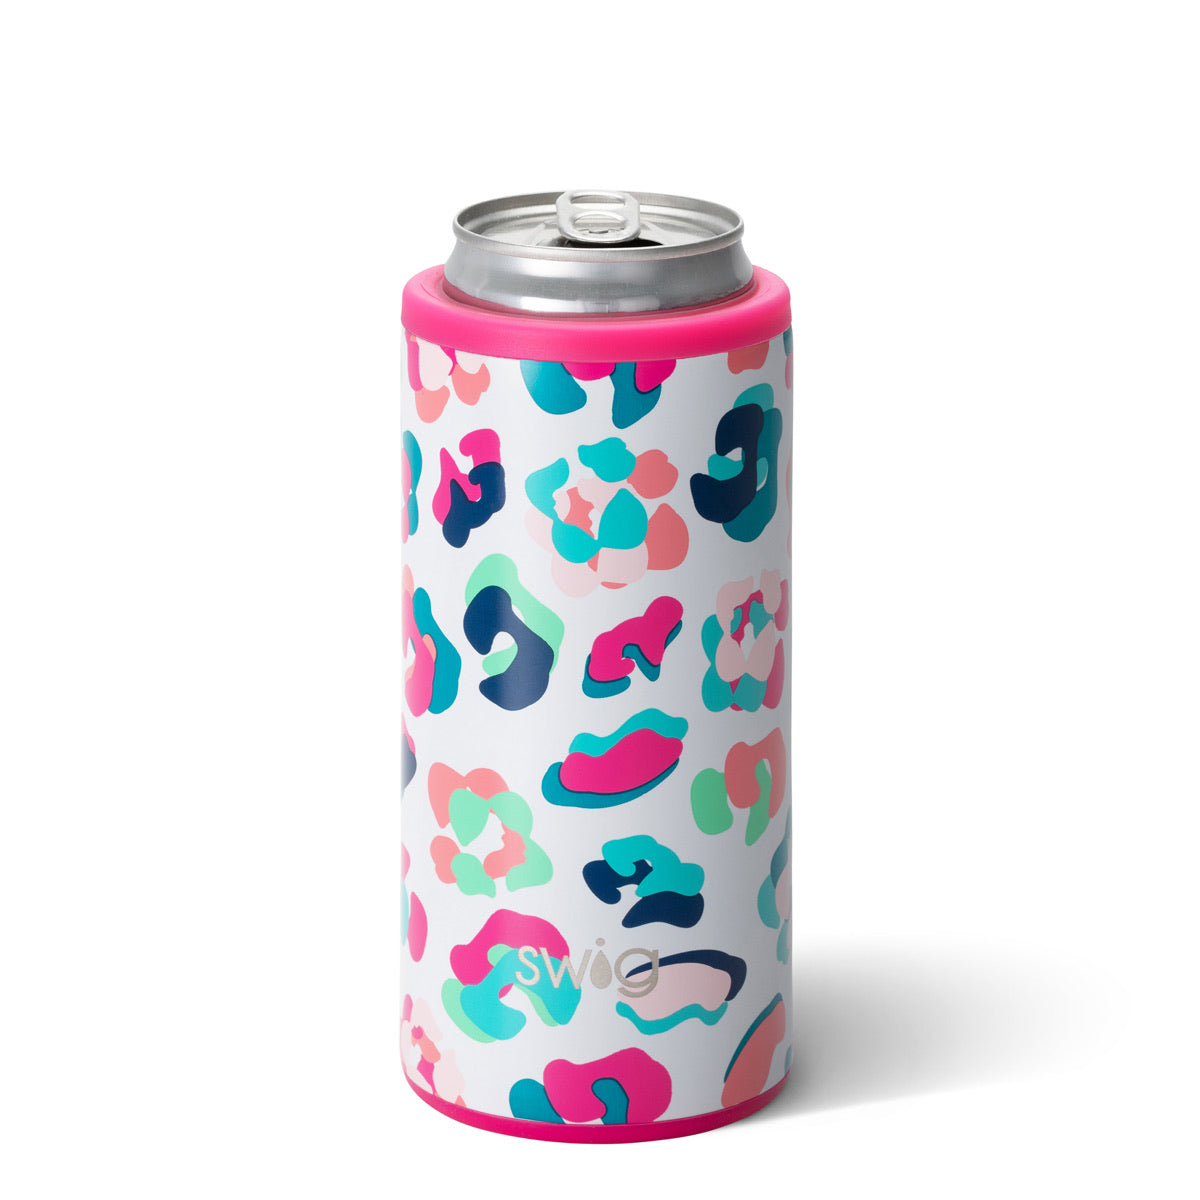 Swig Skinny Can Cooler - Sandy Bums Boutique